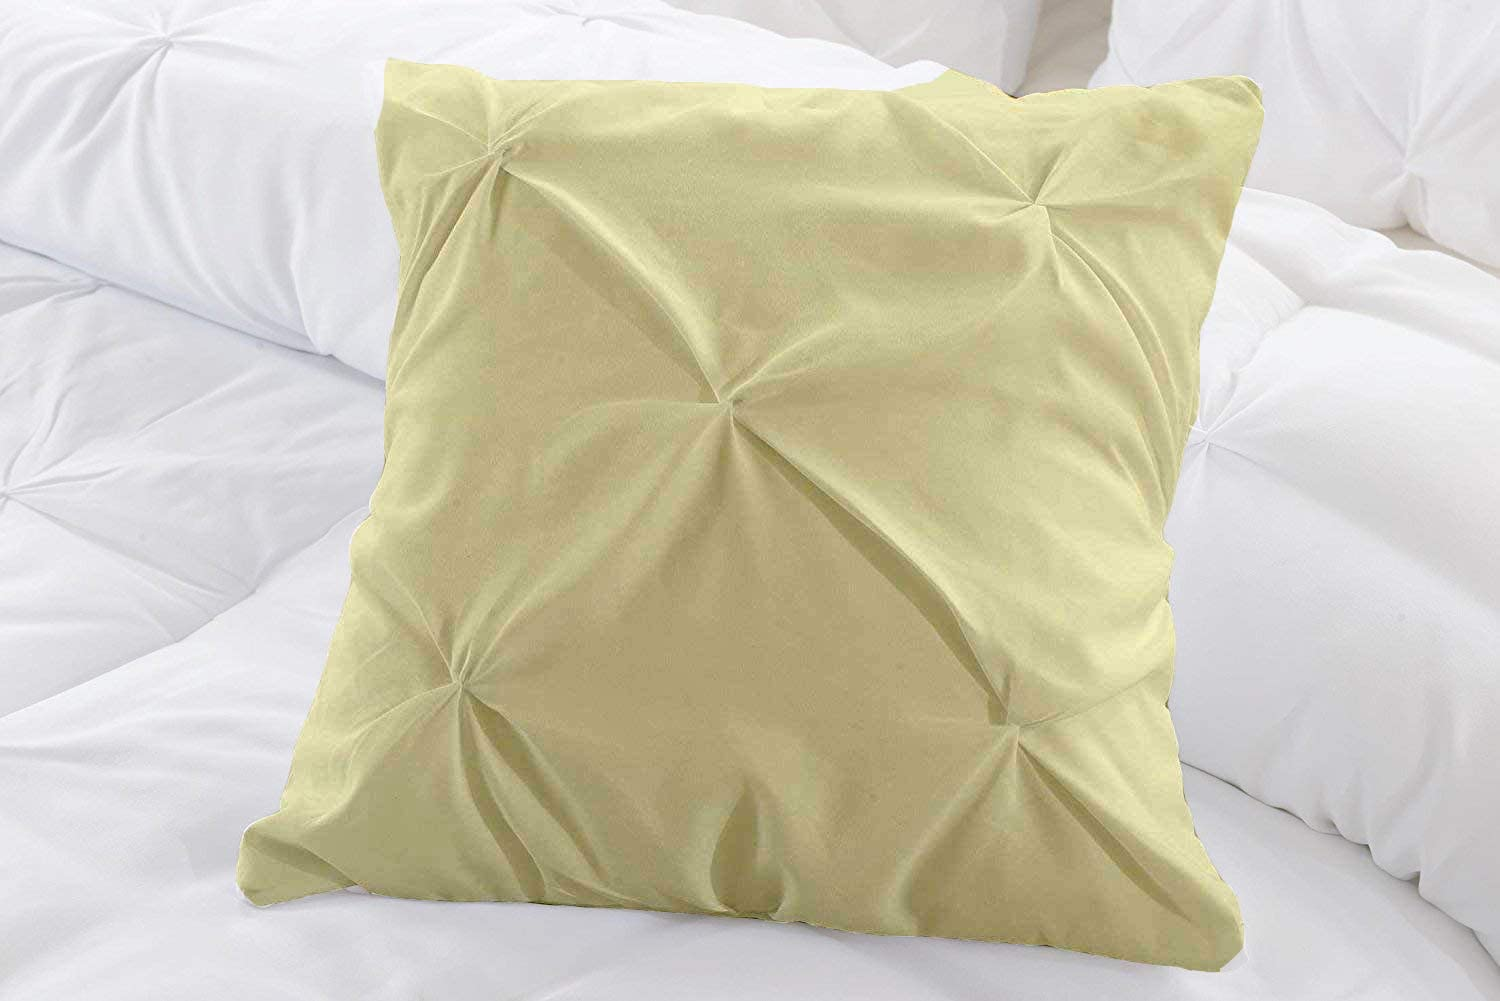 SHEETEX Present Set of 2 Piece Pinch Plated Pillow Shams with Back Over Lapping 1000 Thread Count, Luxurious & Hypoallergenic Decorative Euro/European Size 26